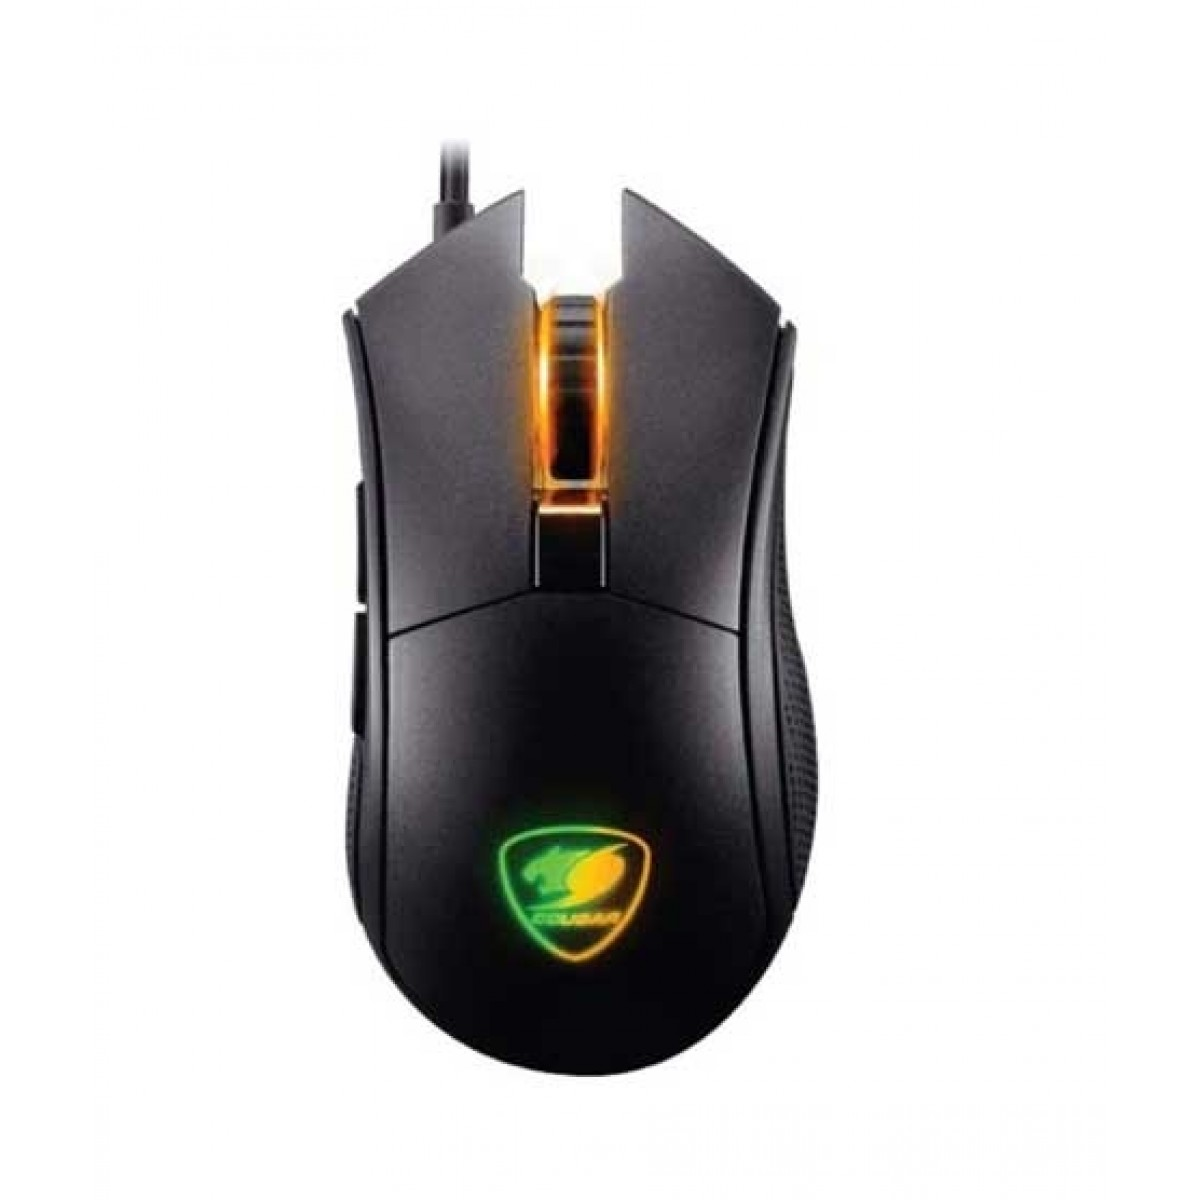 Up-and-coming best gaming mouse by cougar